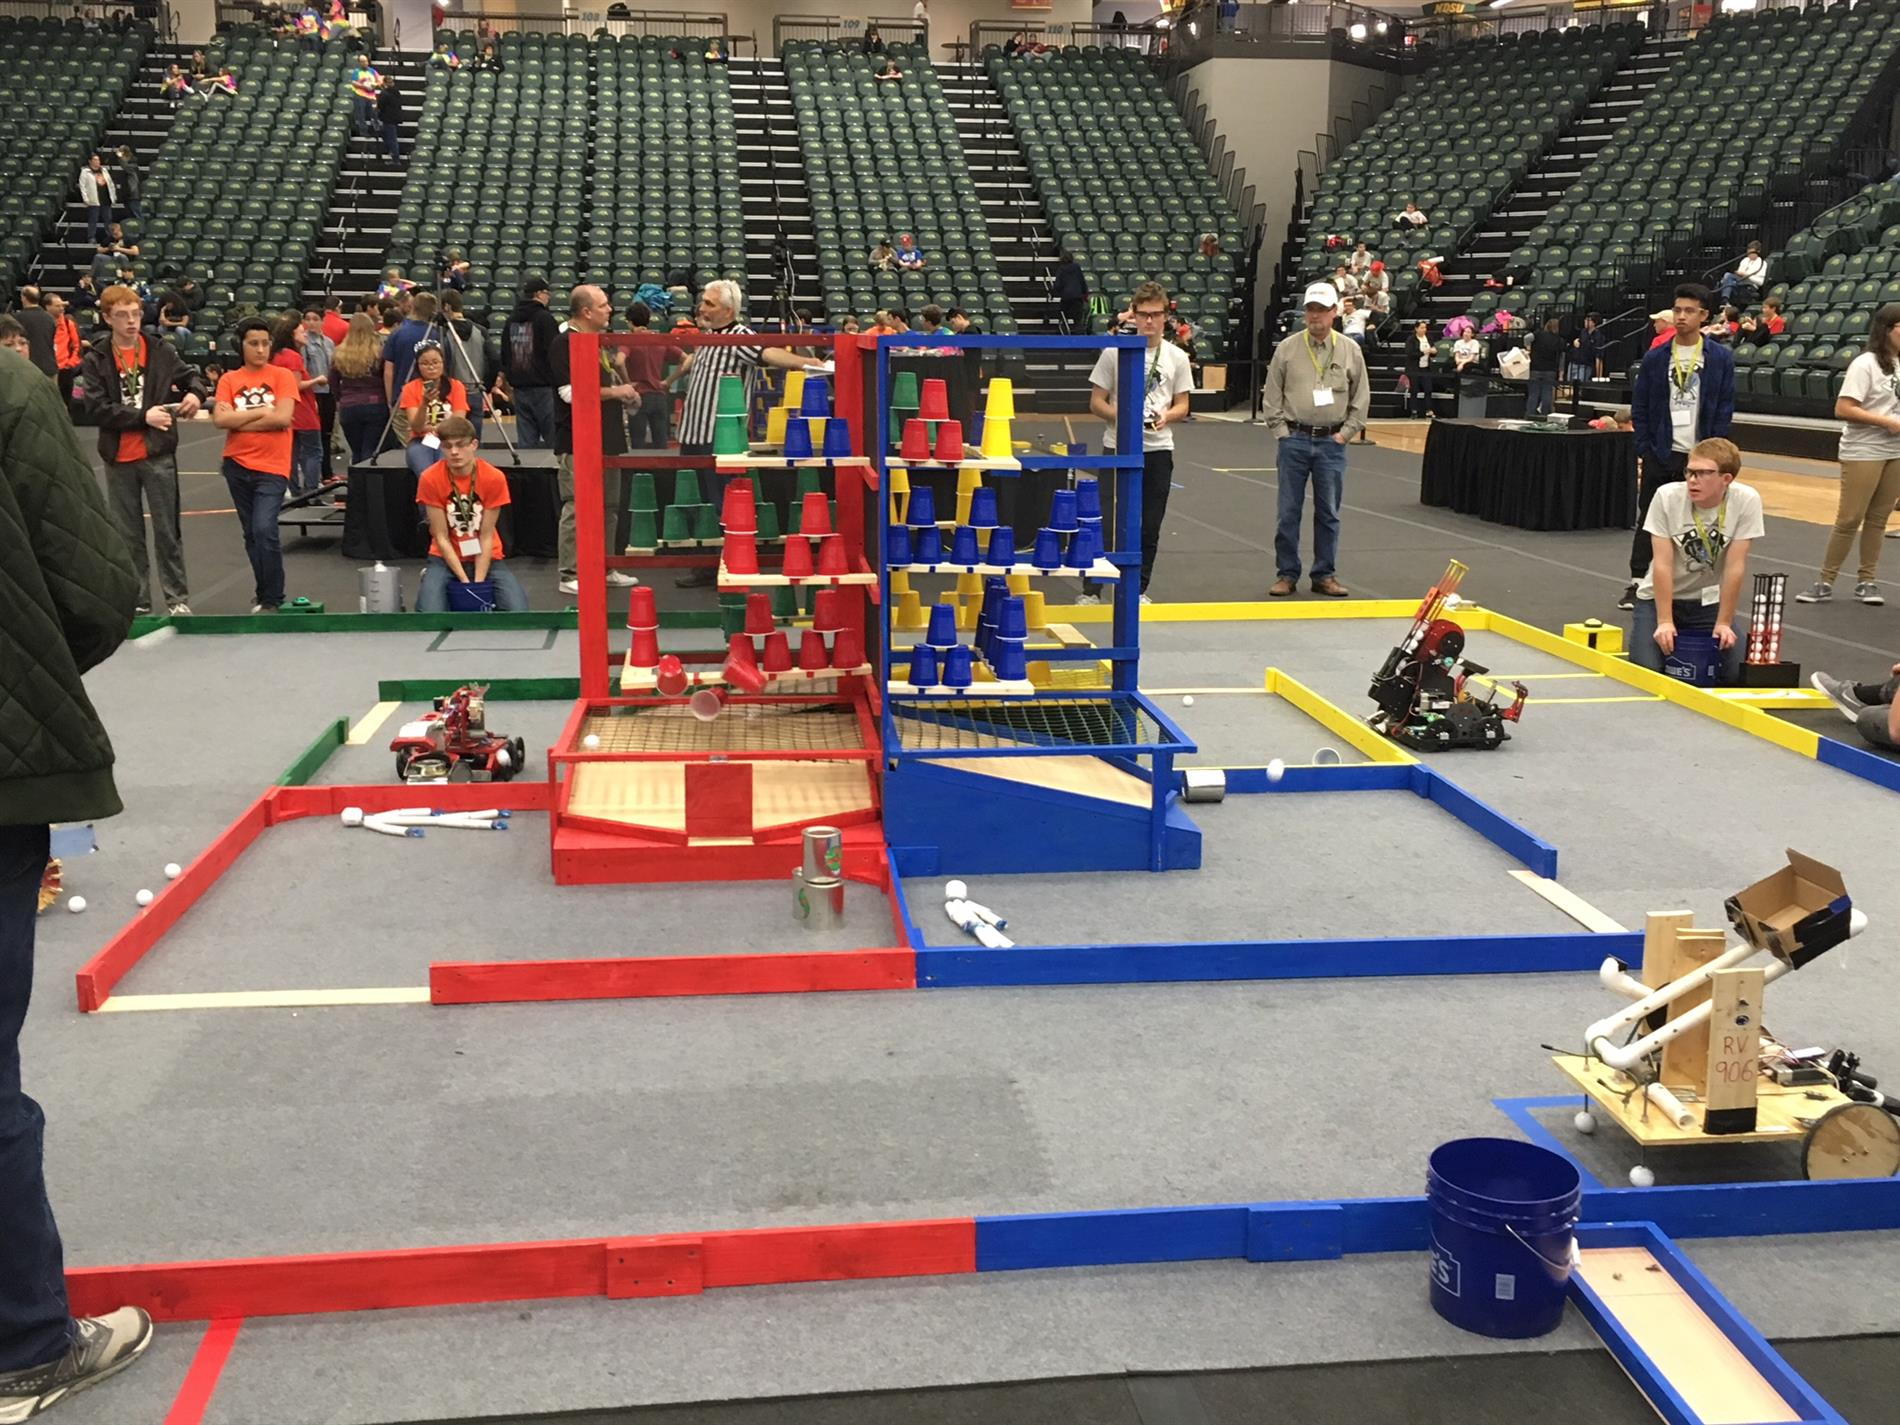 View of the BEST Robotics competition in action